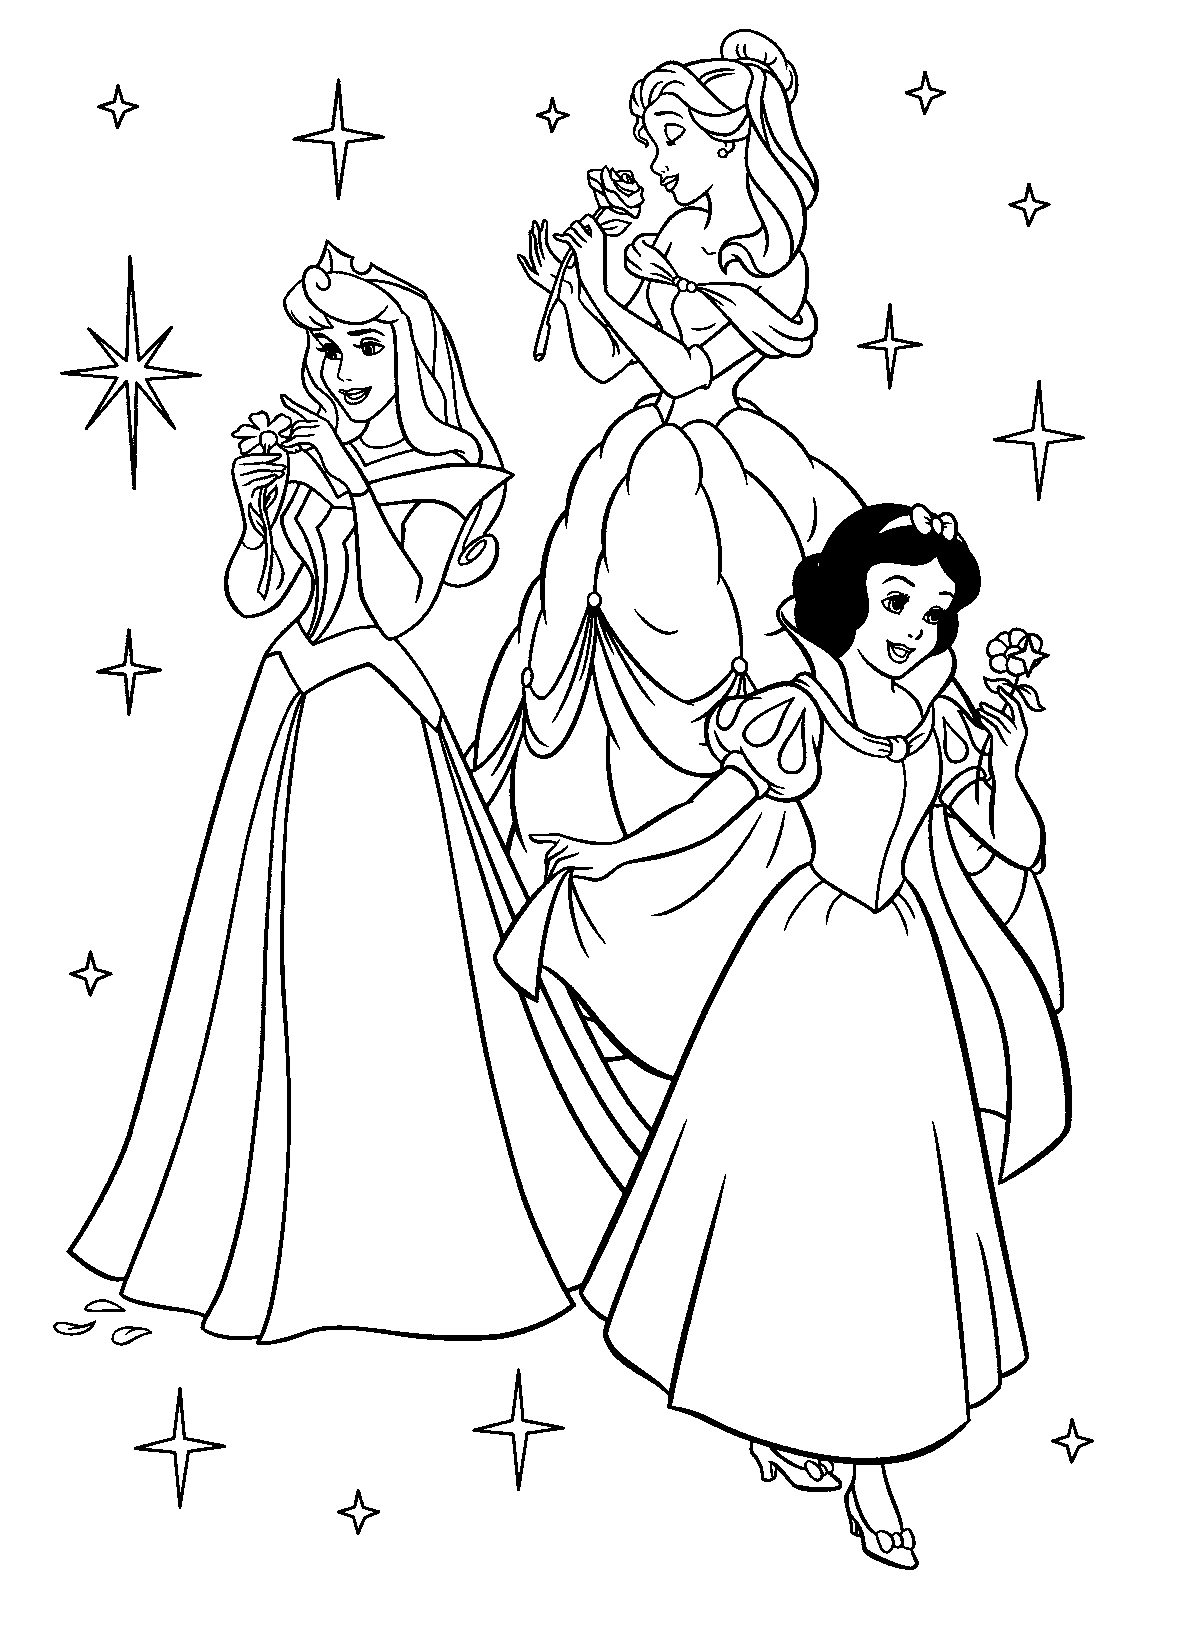 coloring pages for girls disney printable beautiful disney princesses coloring pages for girls pages disney for girls coloring